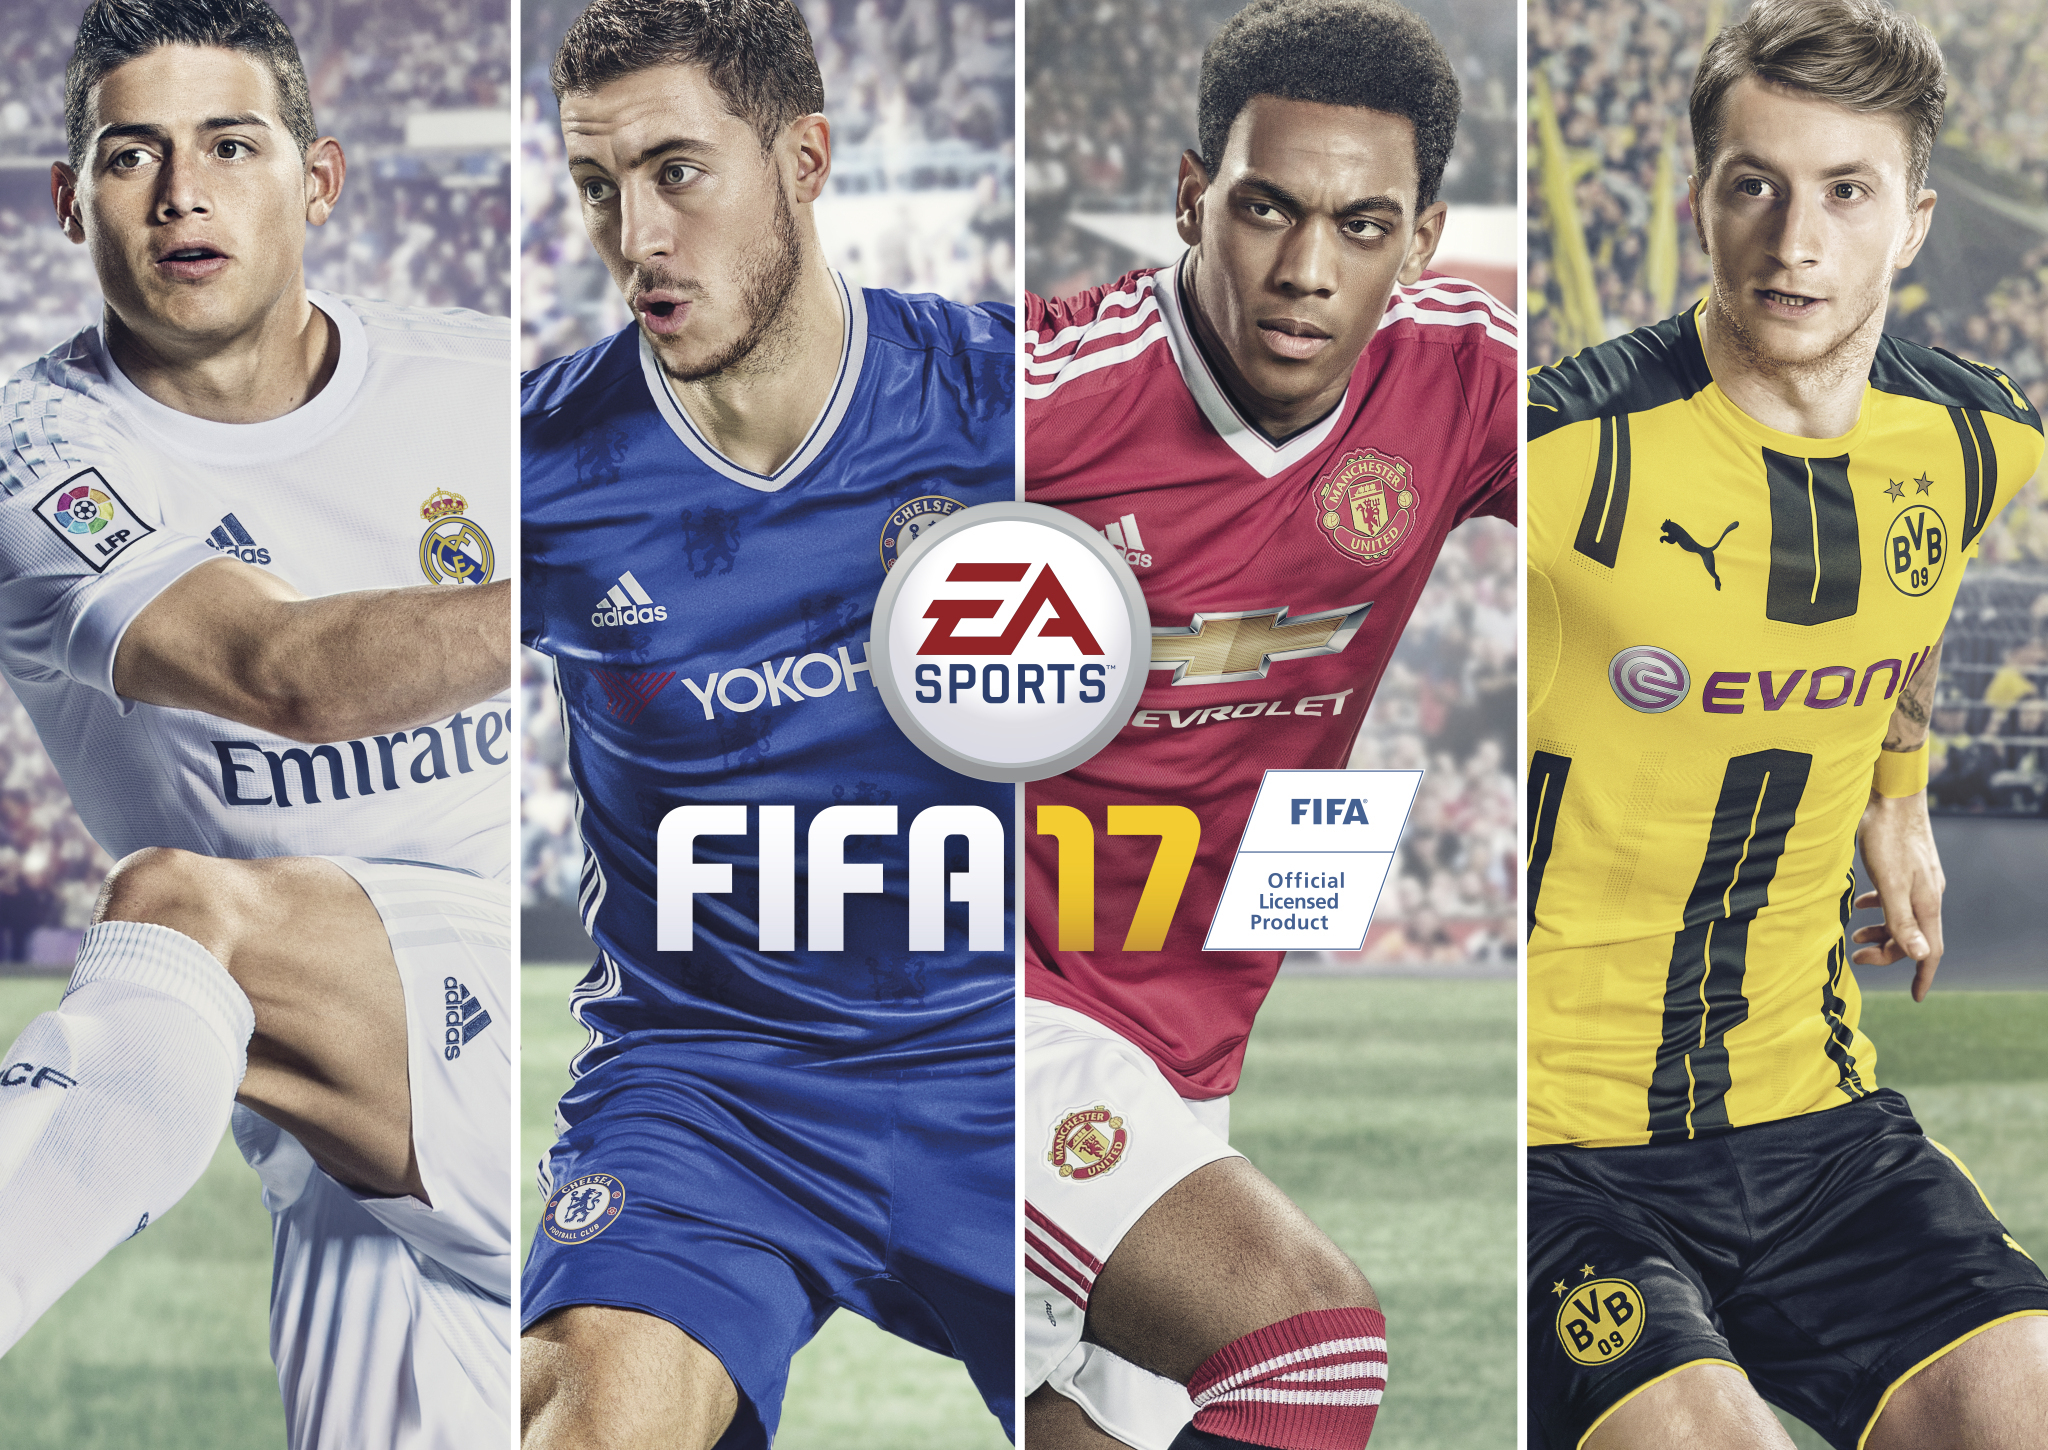 FIFA 17 Pictures